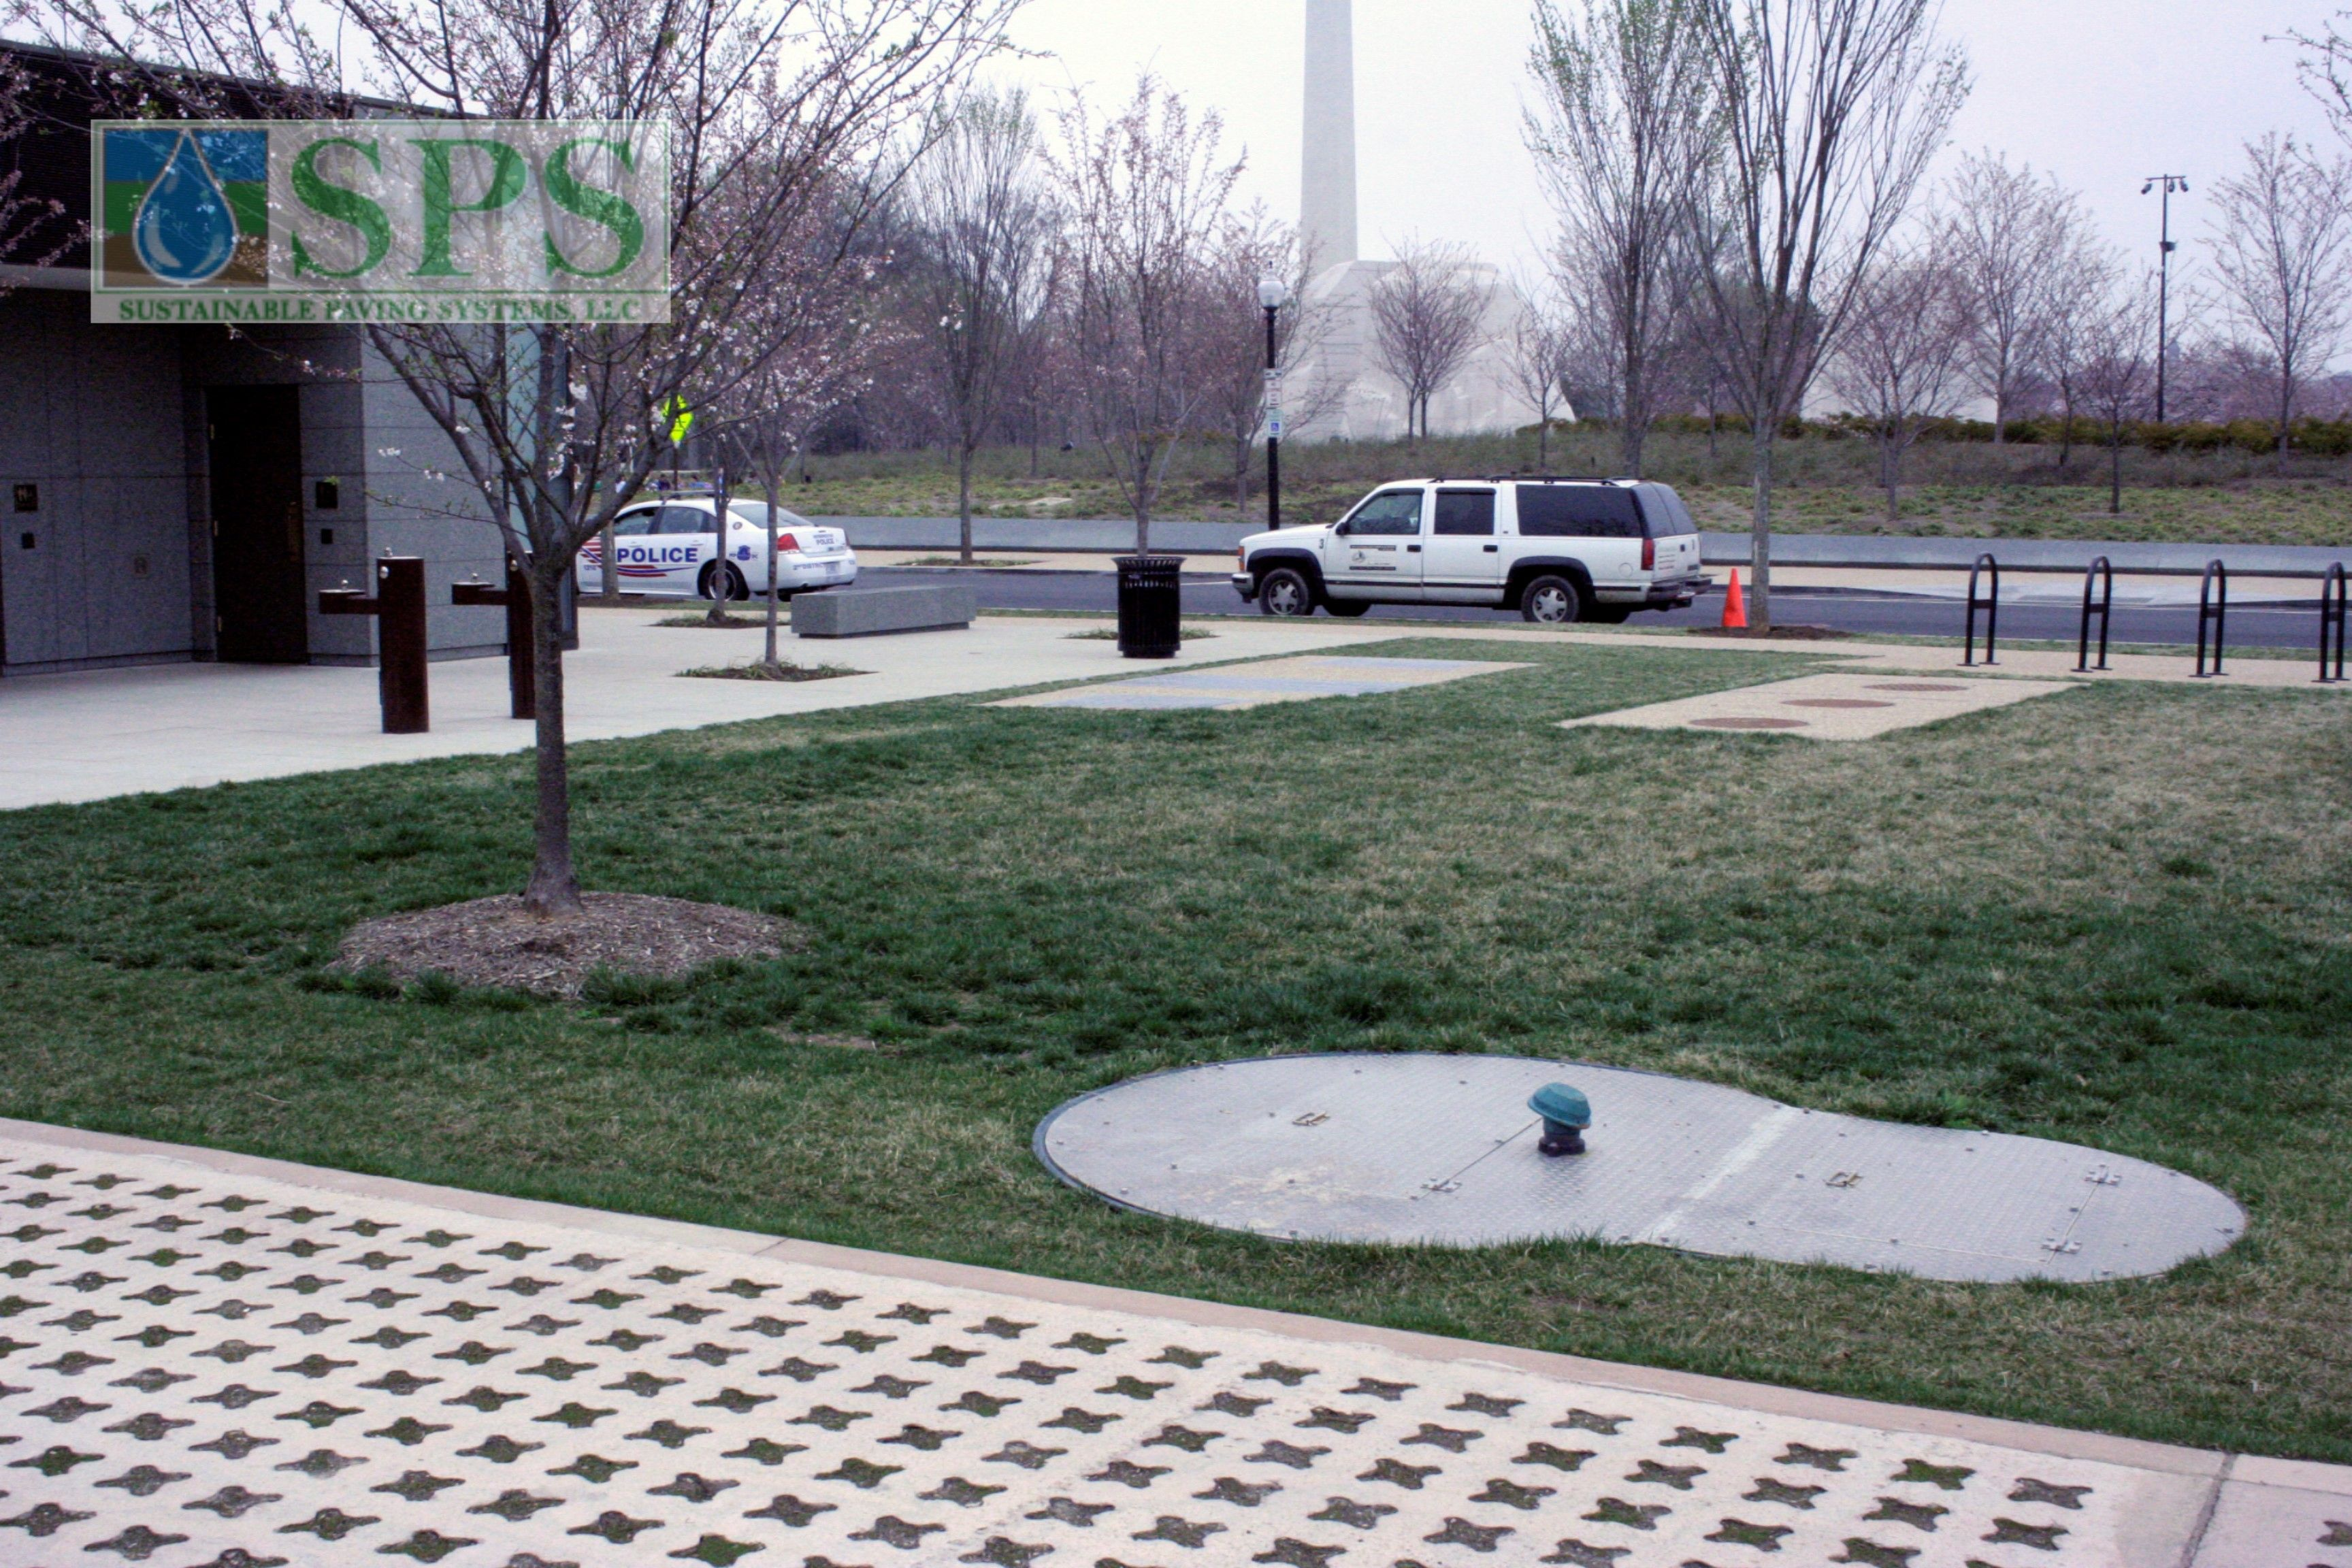 Grasscrete Partially Conceealed System At Mlk National Memorial View Of Vehicle Access_02